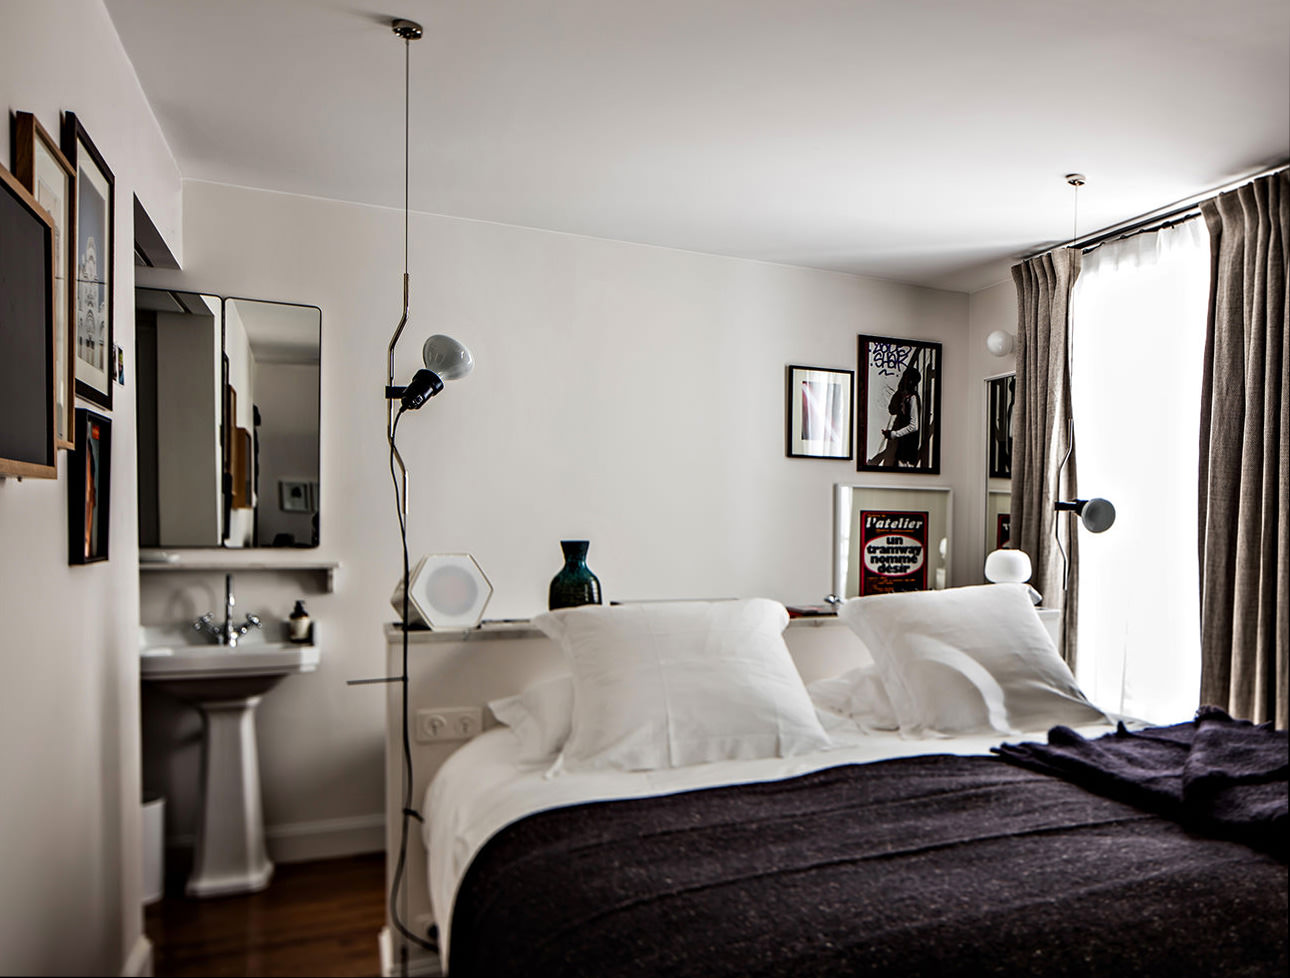 le-pigalle-double-hotel-room-king-size-bed-decor